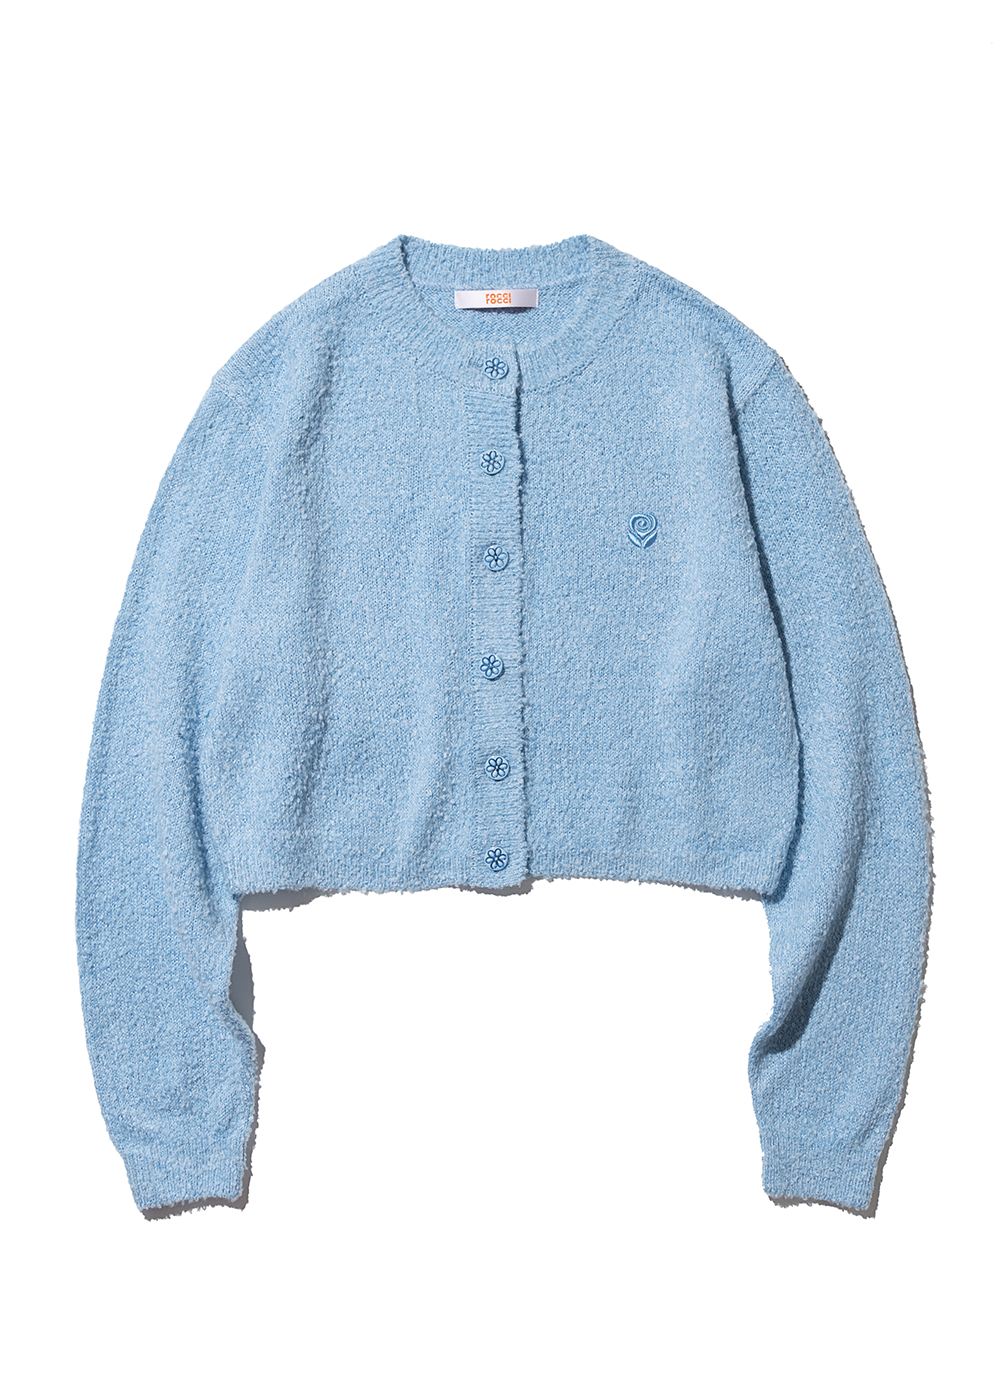 Loop Knit Cardigan [BABY BLUE]Loop Knit Cardigan [BABY BLUE]자체브랜드